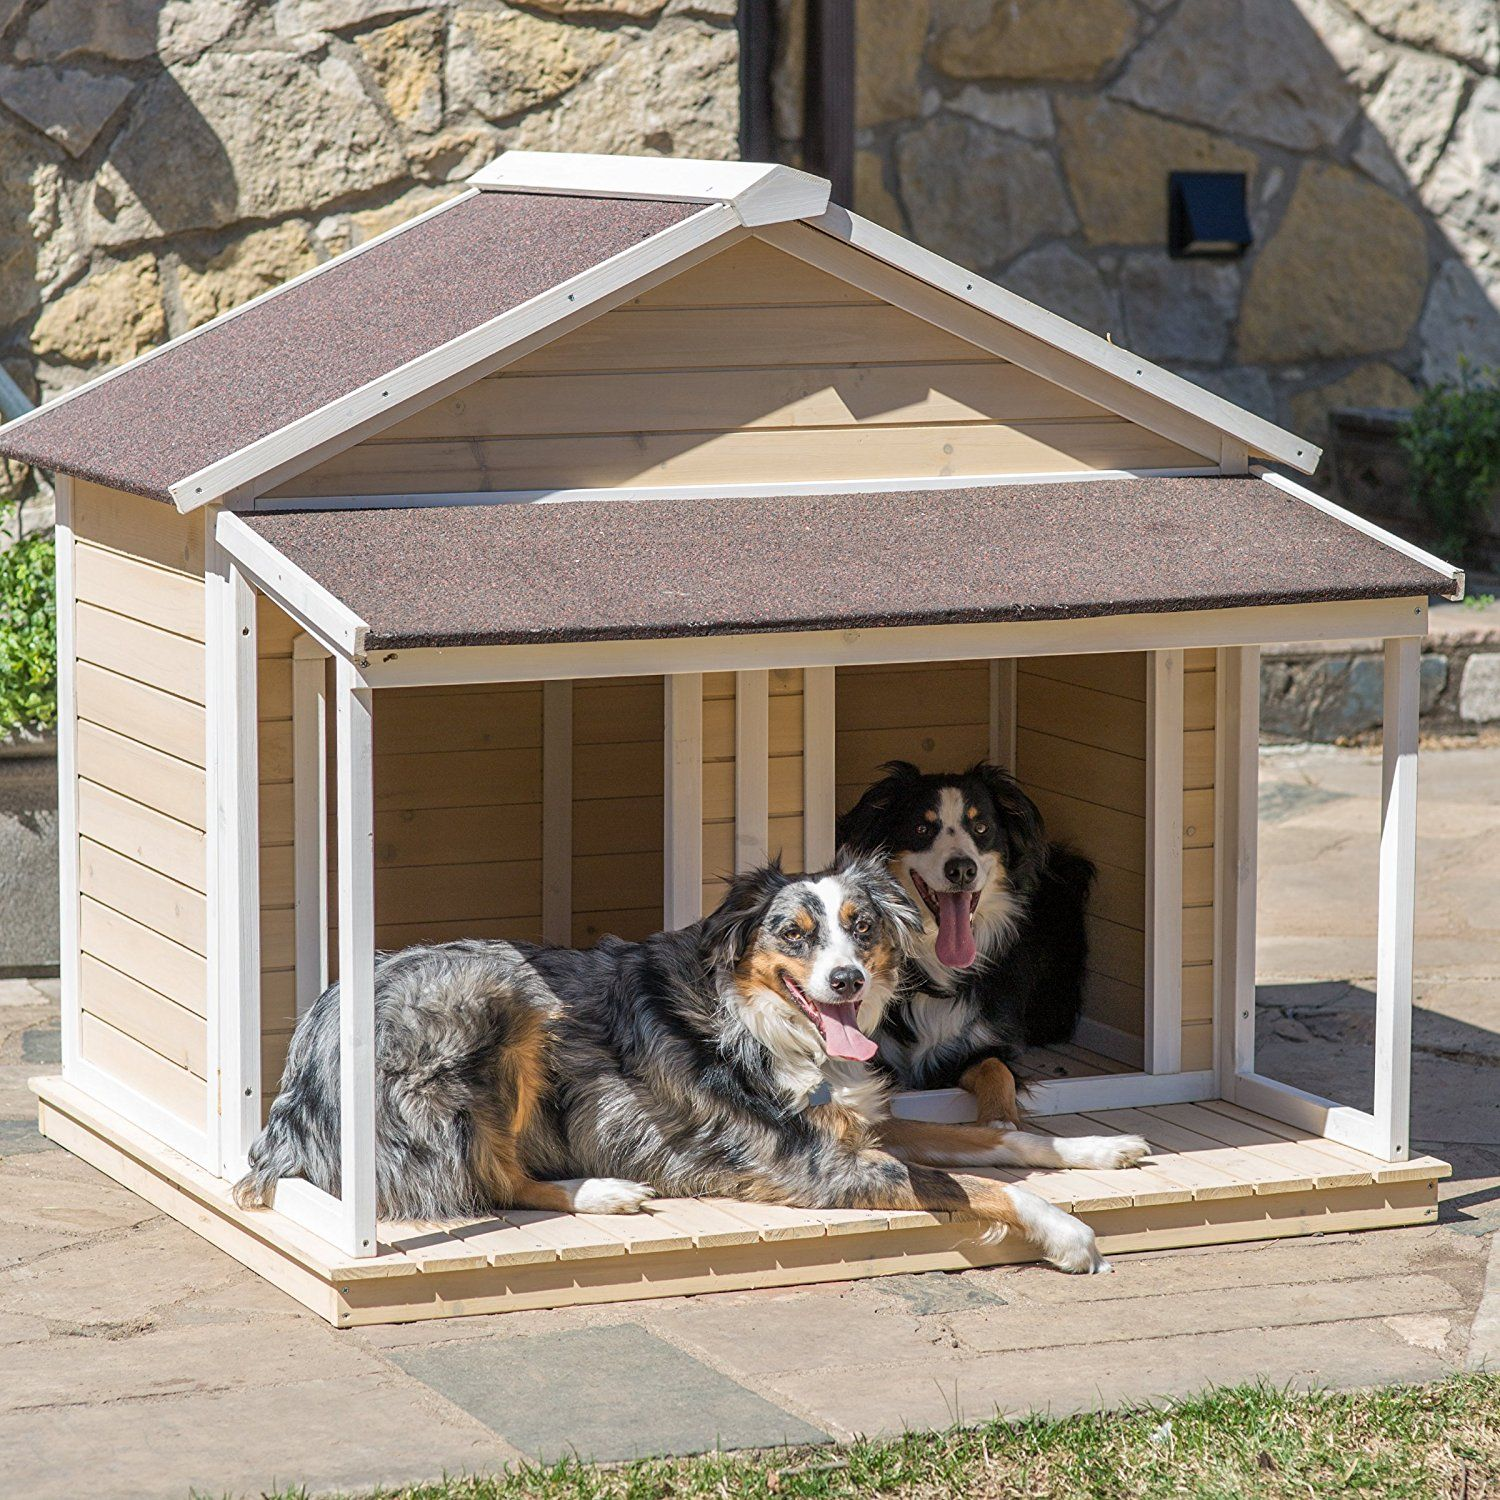 Antique Large Dog House W Roof Solid Wood Penthouse Kennels Crates Duplex 51x43x43 W Balcony Ez Entrance For Large Dog House Outdoor Dog Bed Cool Dog Houses